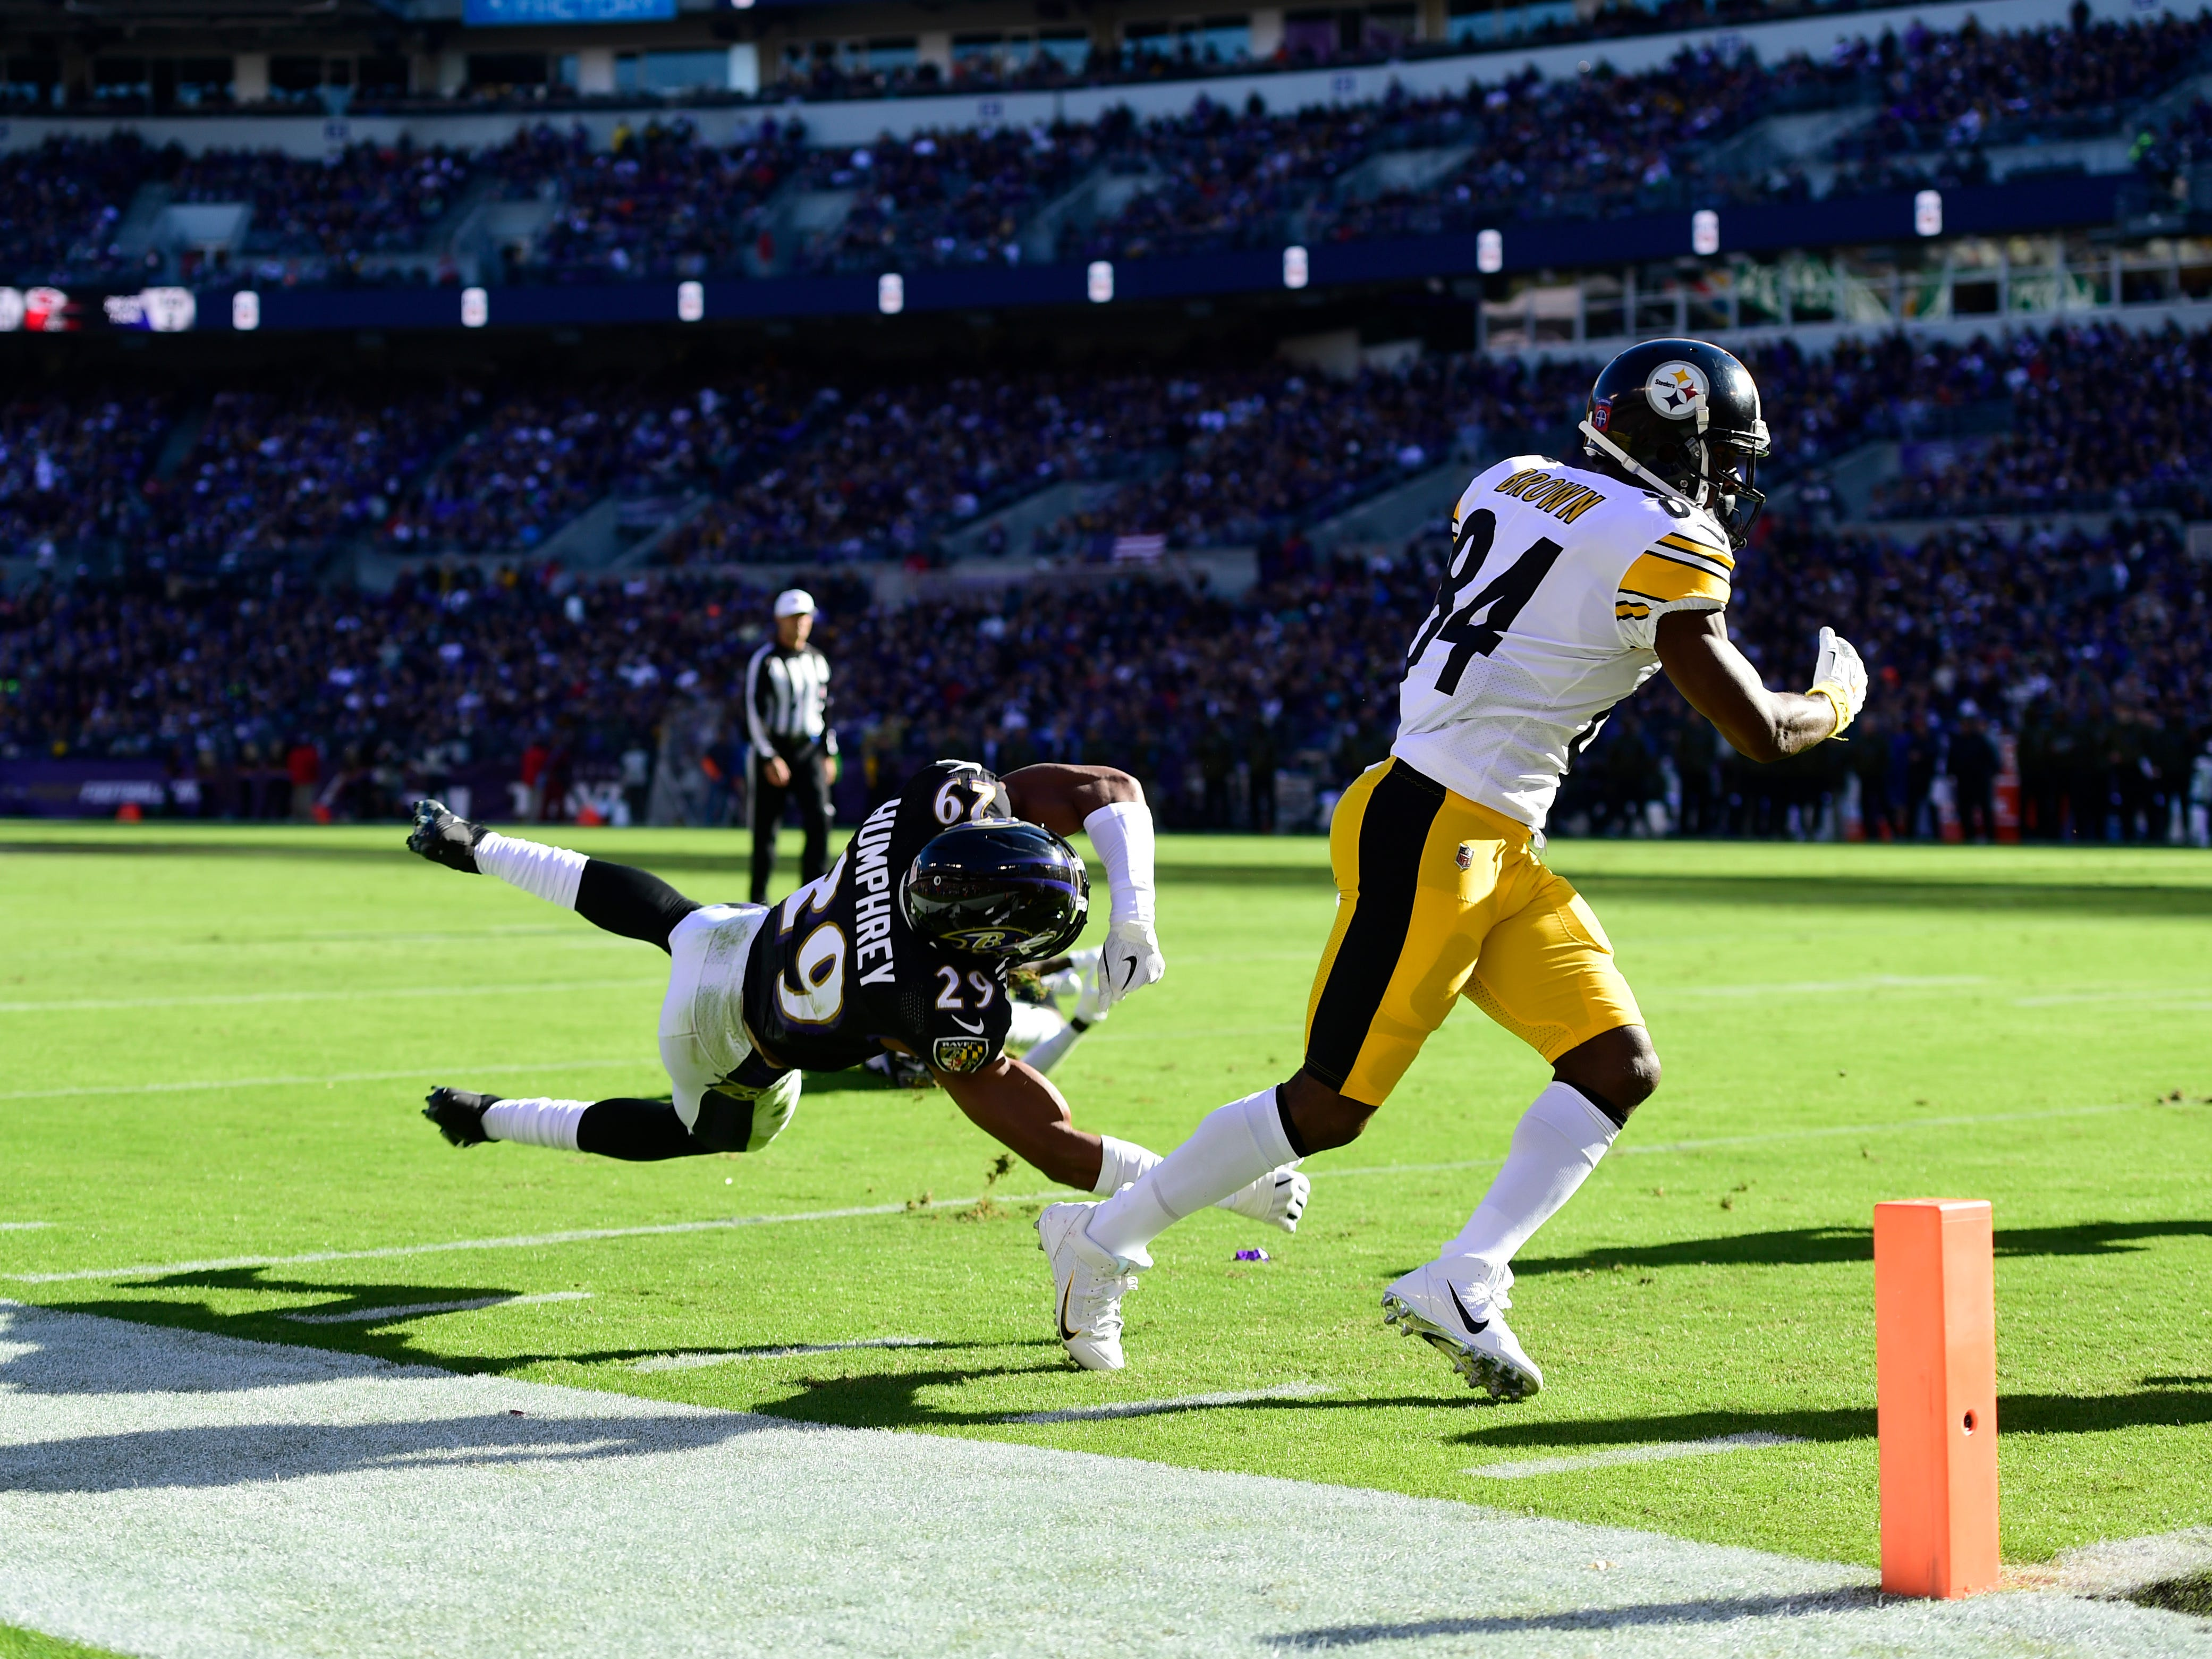 Pittsburgh Steelers wide receiver Antonio Brown (84) scoots runs past Baltimore Ravens cornerback Marlon Humphrey (29) for  a second-quarter touchdown at M&T Bank Stadium.